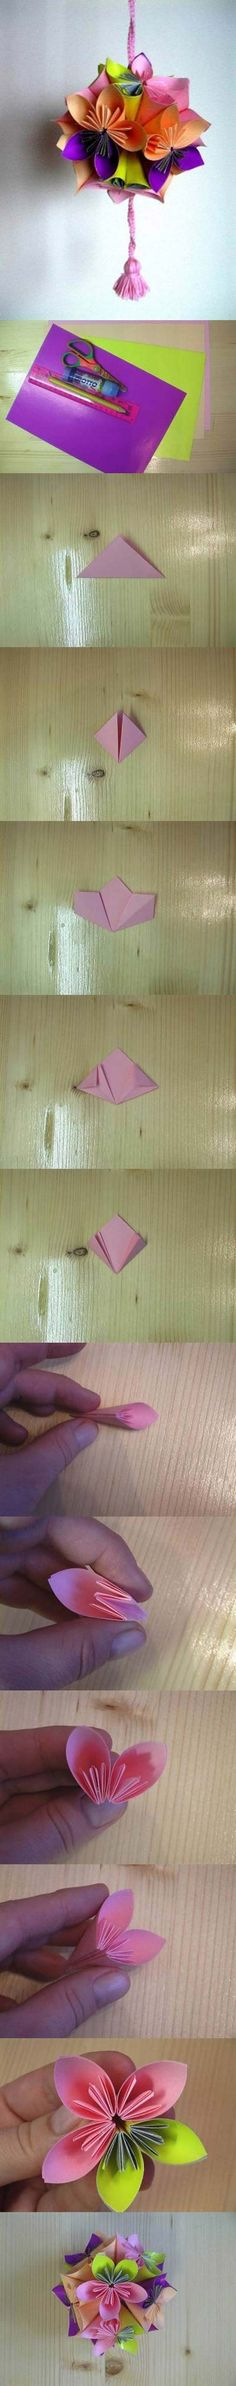 Best Origami Tutorials - Origami Flower Ball - Easy DIY Origami Tutorial Projects for With Instructions for Flowers, Dog, Gift Box, Star, Owl, Buttlerfly, Heart and Bookmark, Animals - Fun Paper Crafts for Teens, Kids and Adults http://diyprojectsforteens.com/best-origami-tutorials